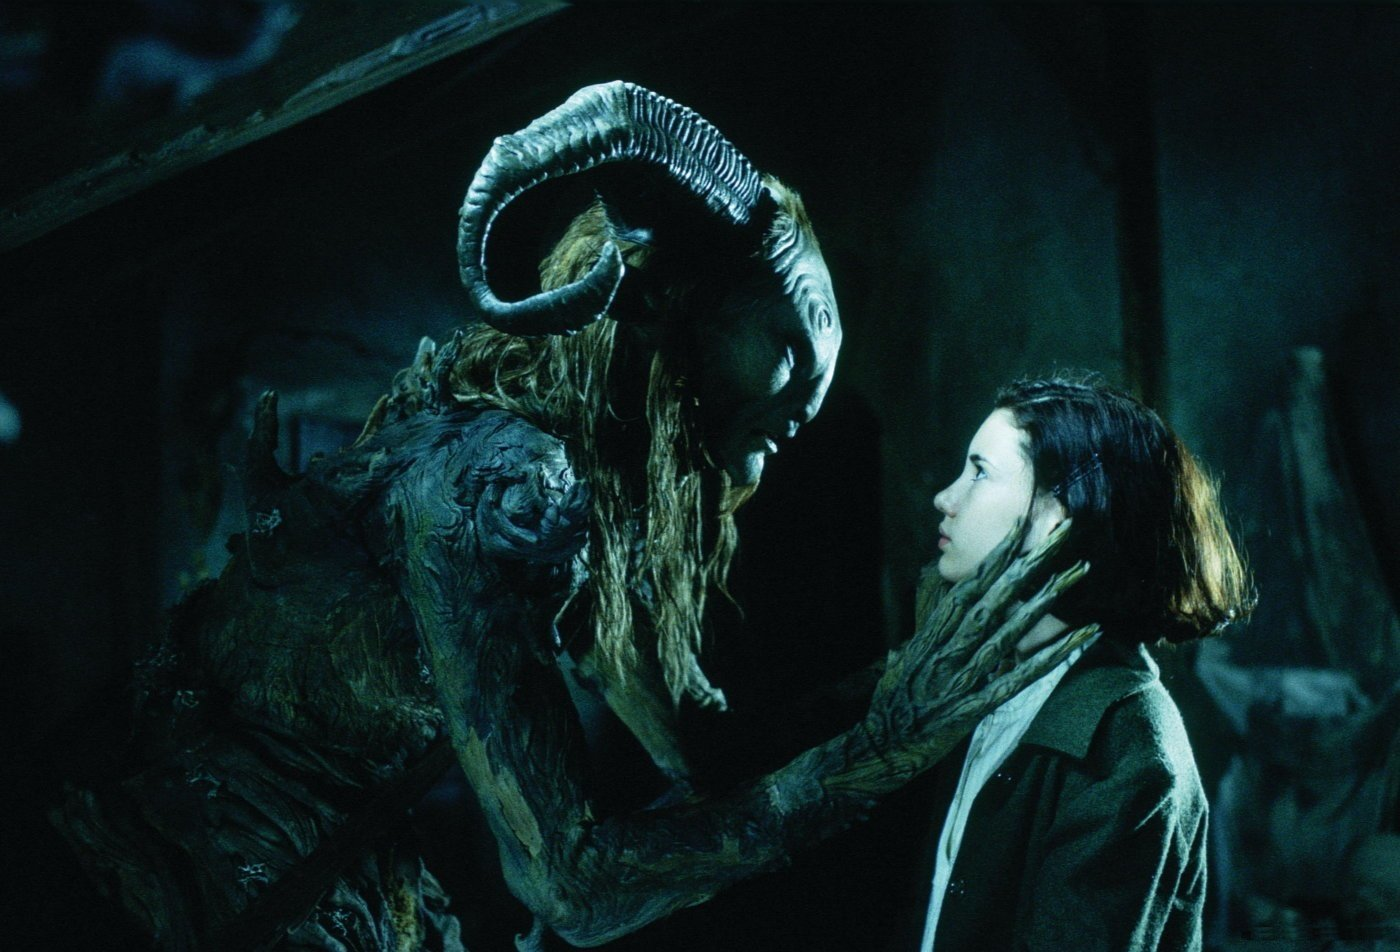 pans labyrinth conclusion sentence Nonton film pan's labyrinth (2006) streaming dan download movie subtitle indonesia kualitas hd gratis terlengkap dan terbaru drama, fantasy, war, spain, mexico, usa, guillermo del toro, ivana baquero, sergi lópez, maribel verdú, doug jones.